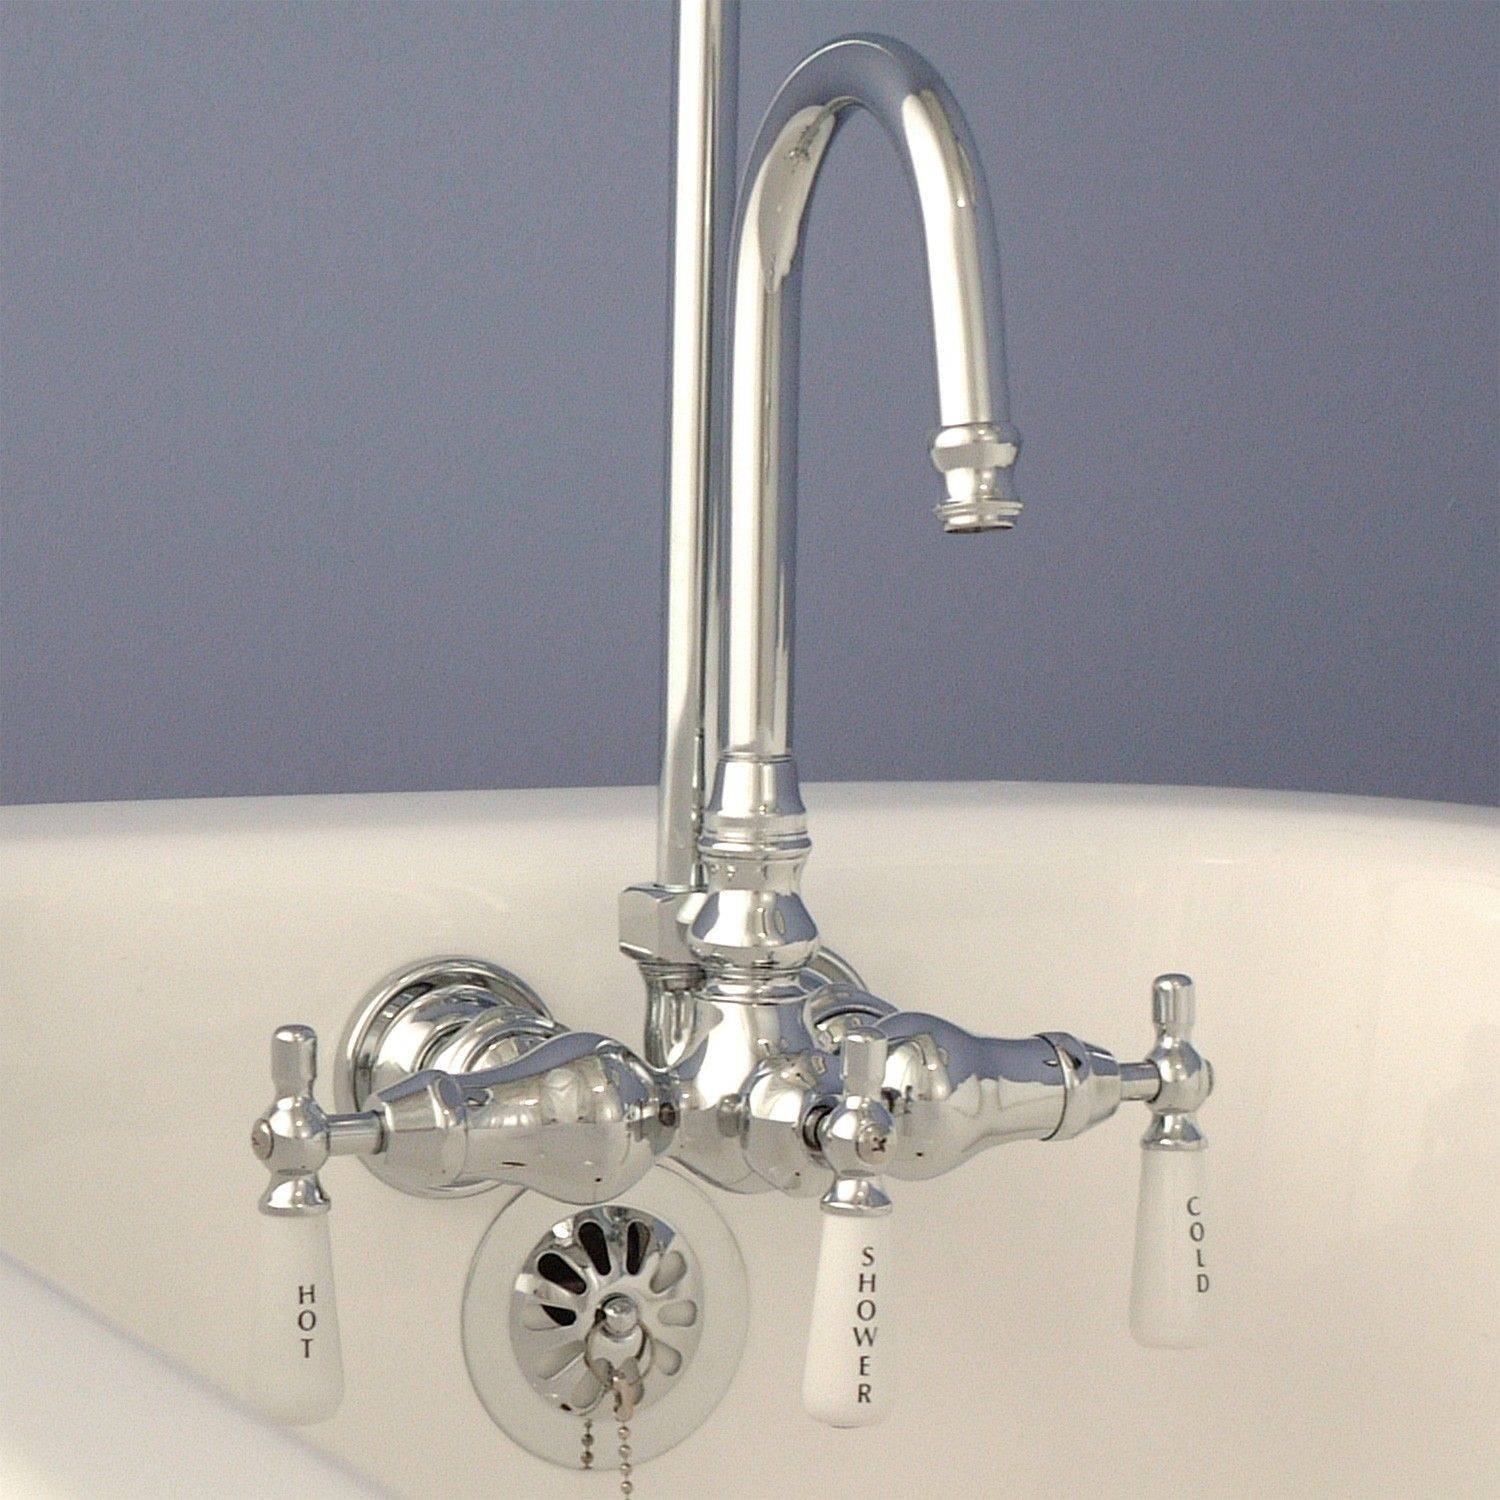 Gentil Unique Clawfoot Tub Faucets With Shower Diverter